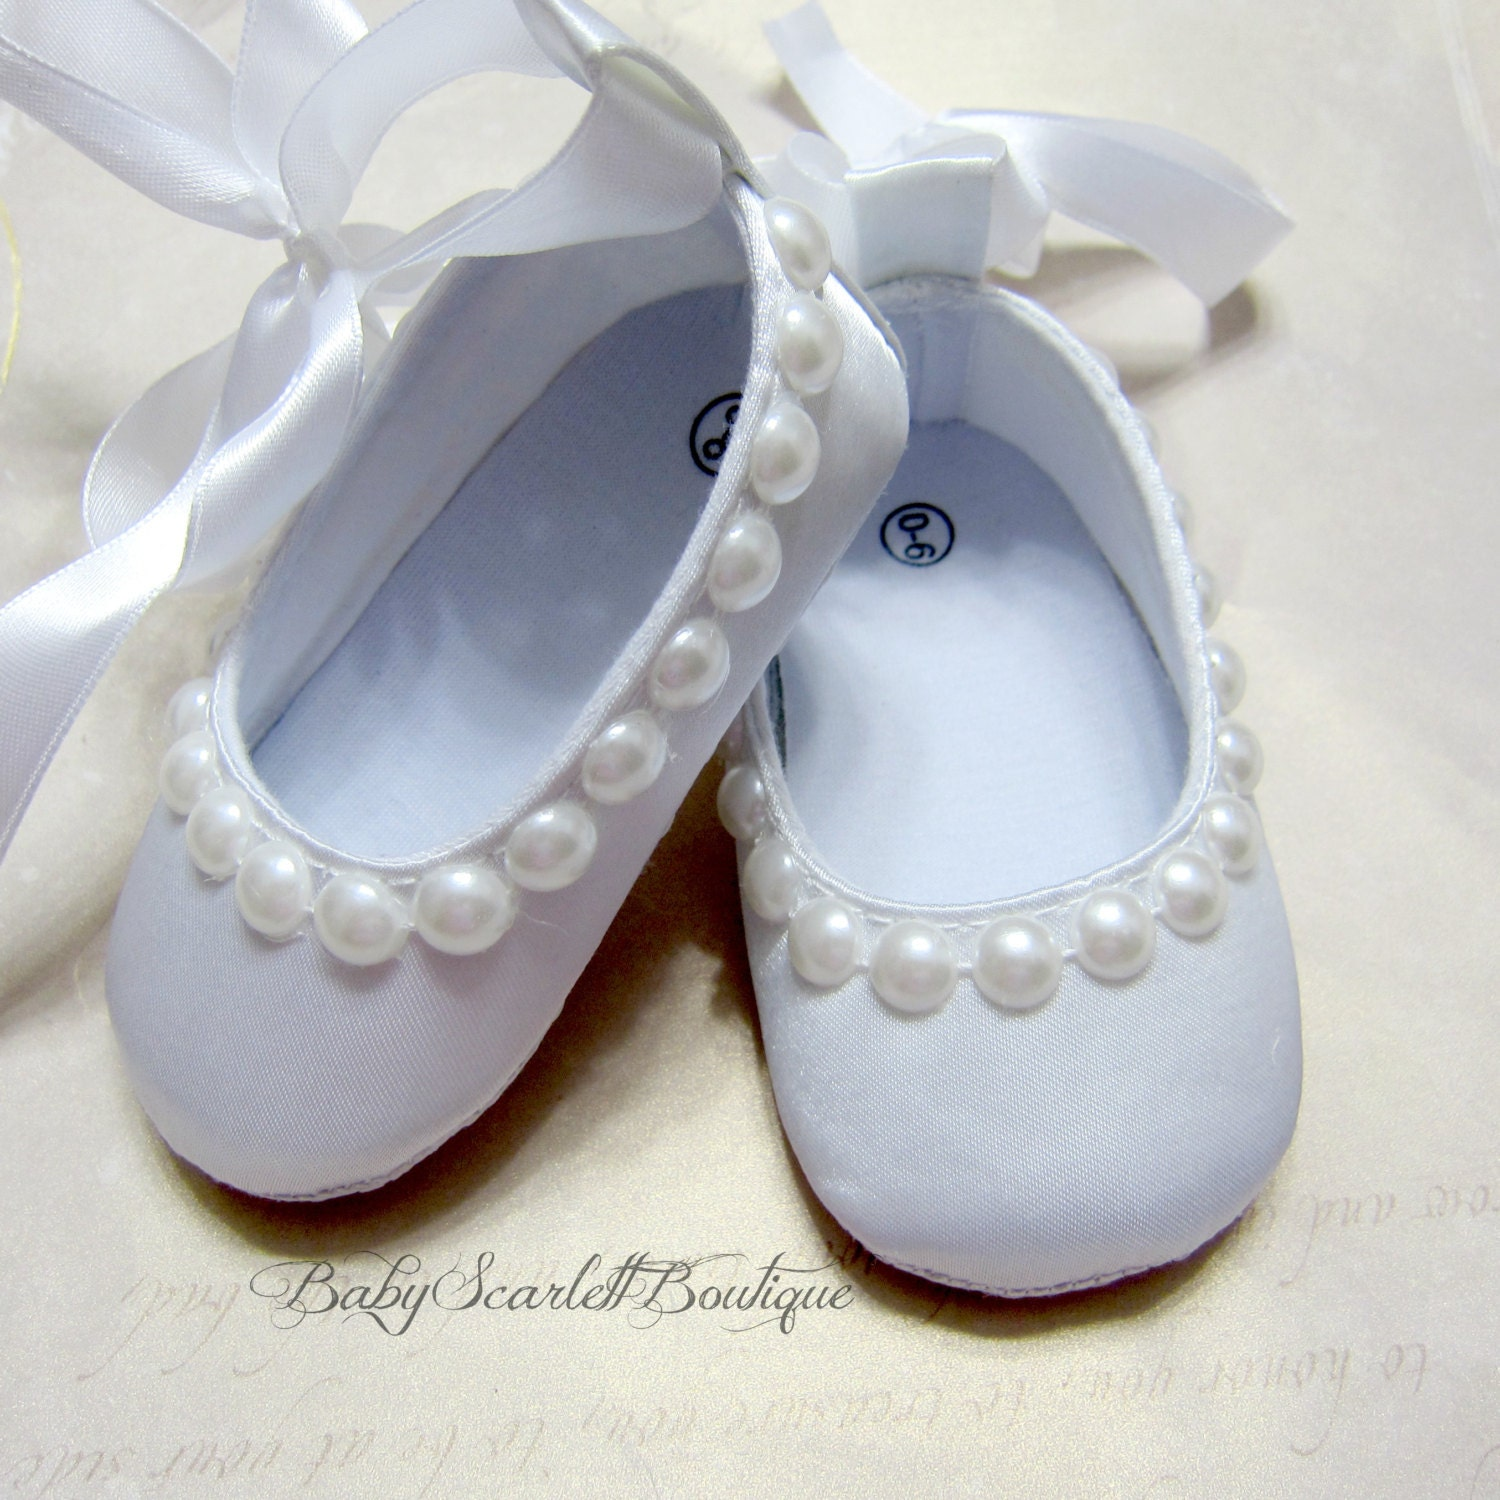 white satin baby shoessoft sole shoesinfant shoes